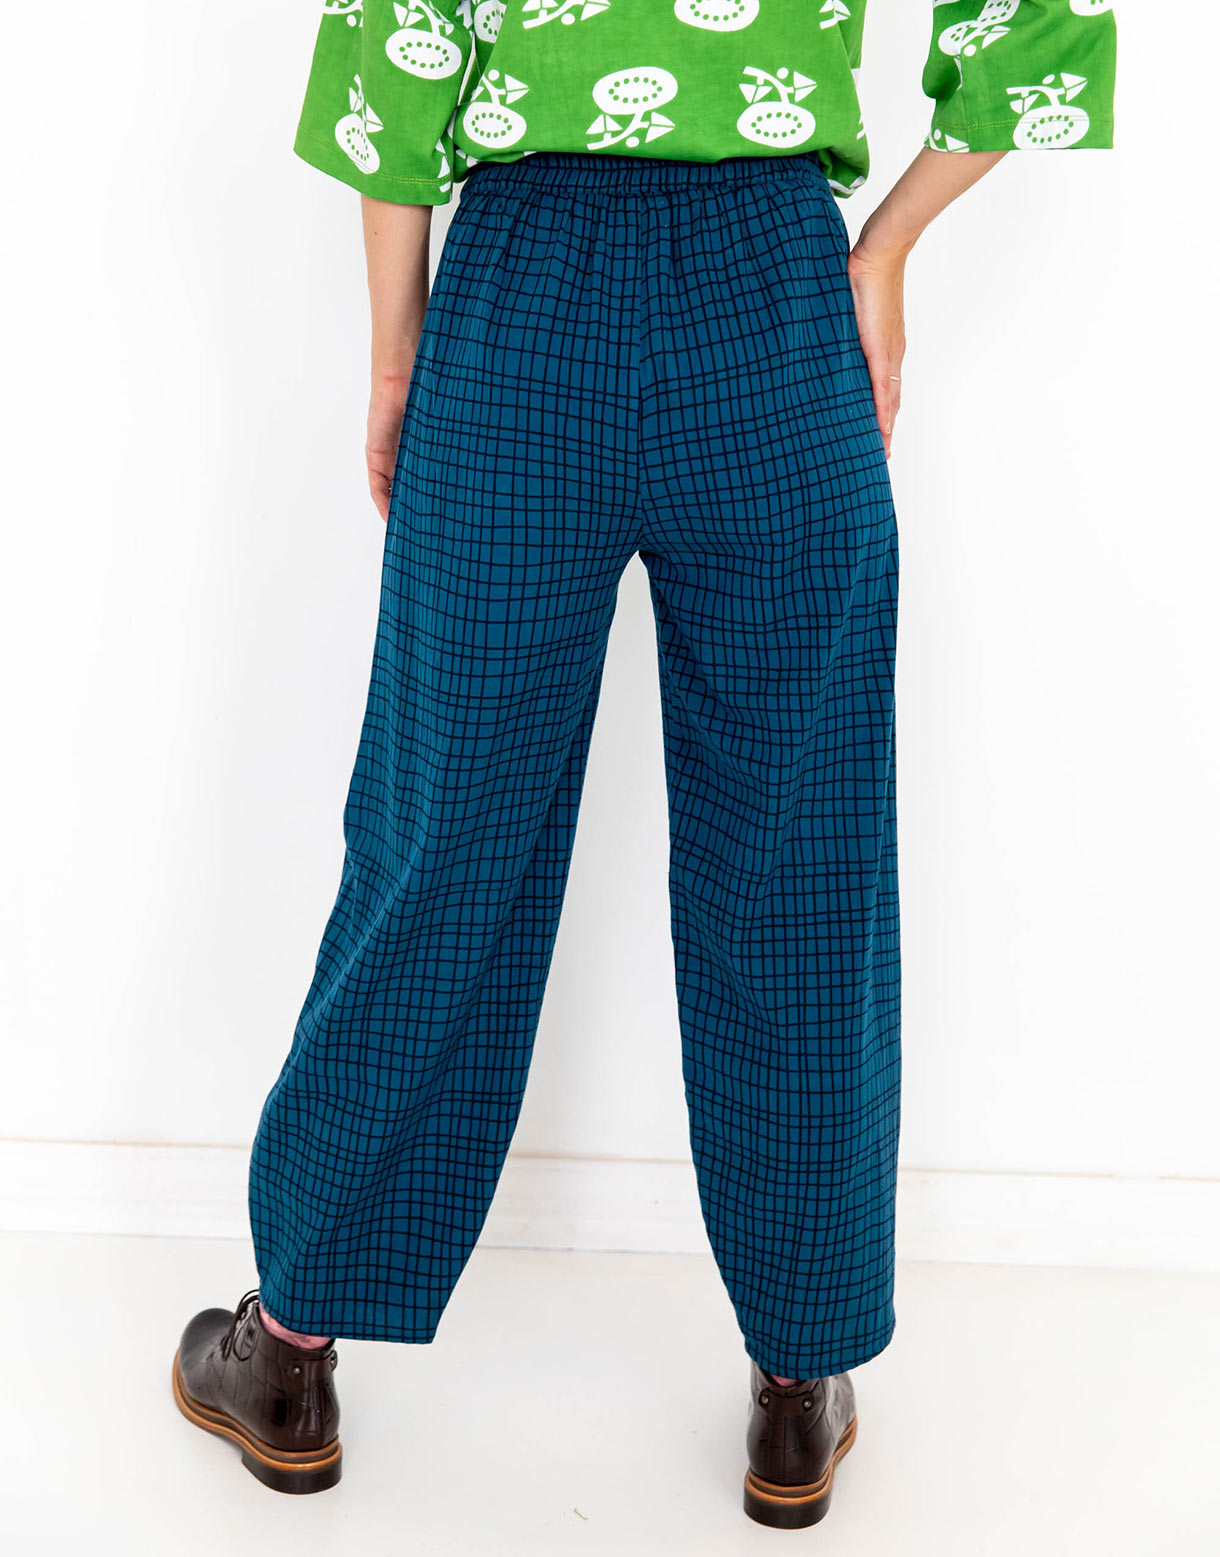 Sierra Pant in Grid *organic cotton/recycled flax